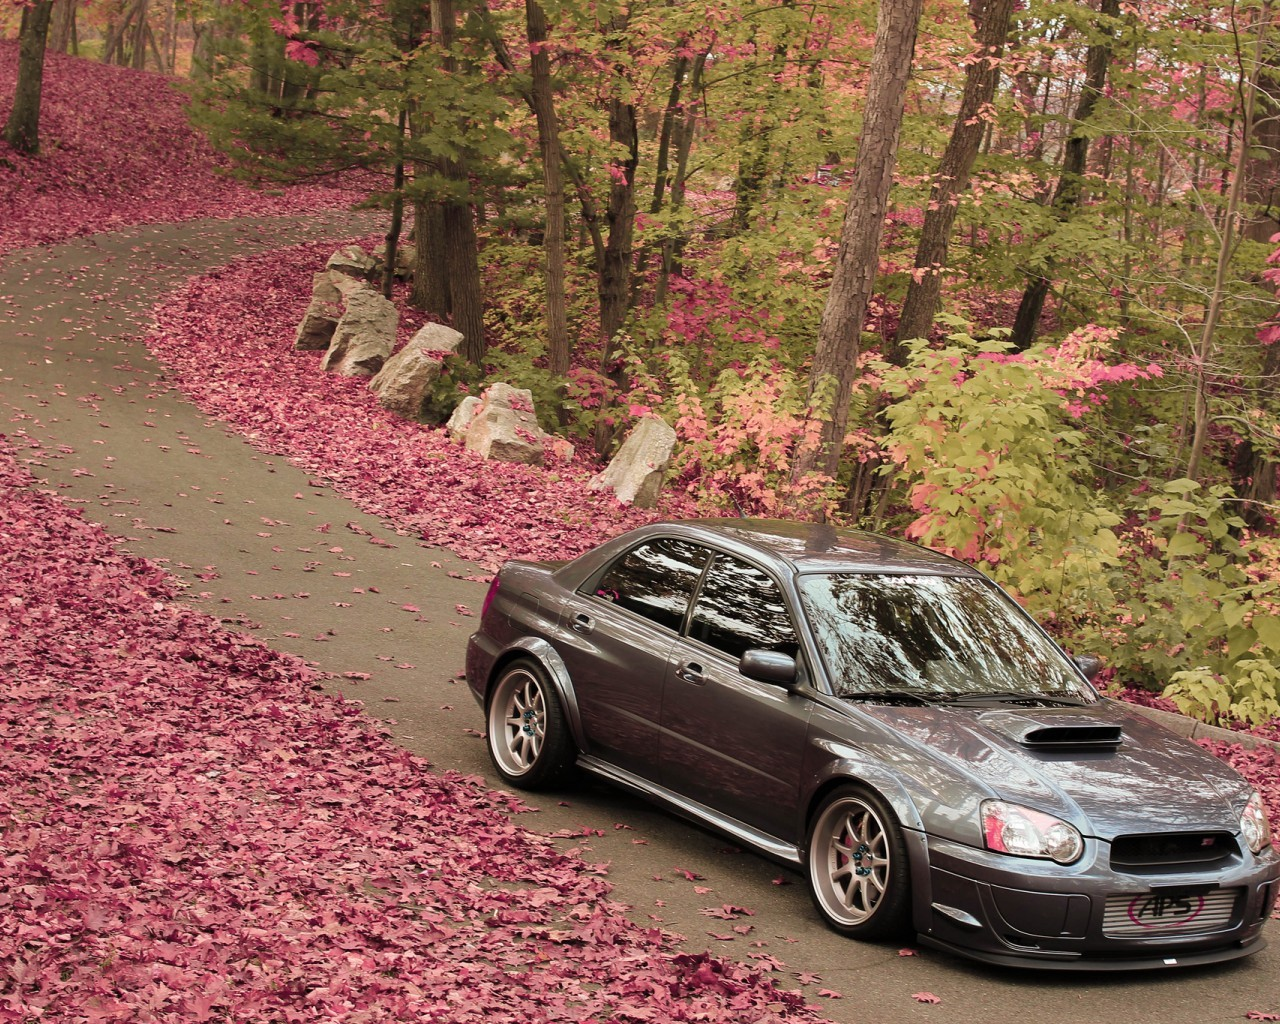 19846 download wallpaper Transport, Auto, Roads, Autumn, Leaves, Subaru screensavers and pictures for free